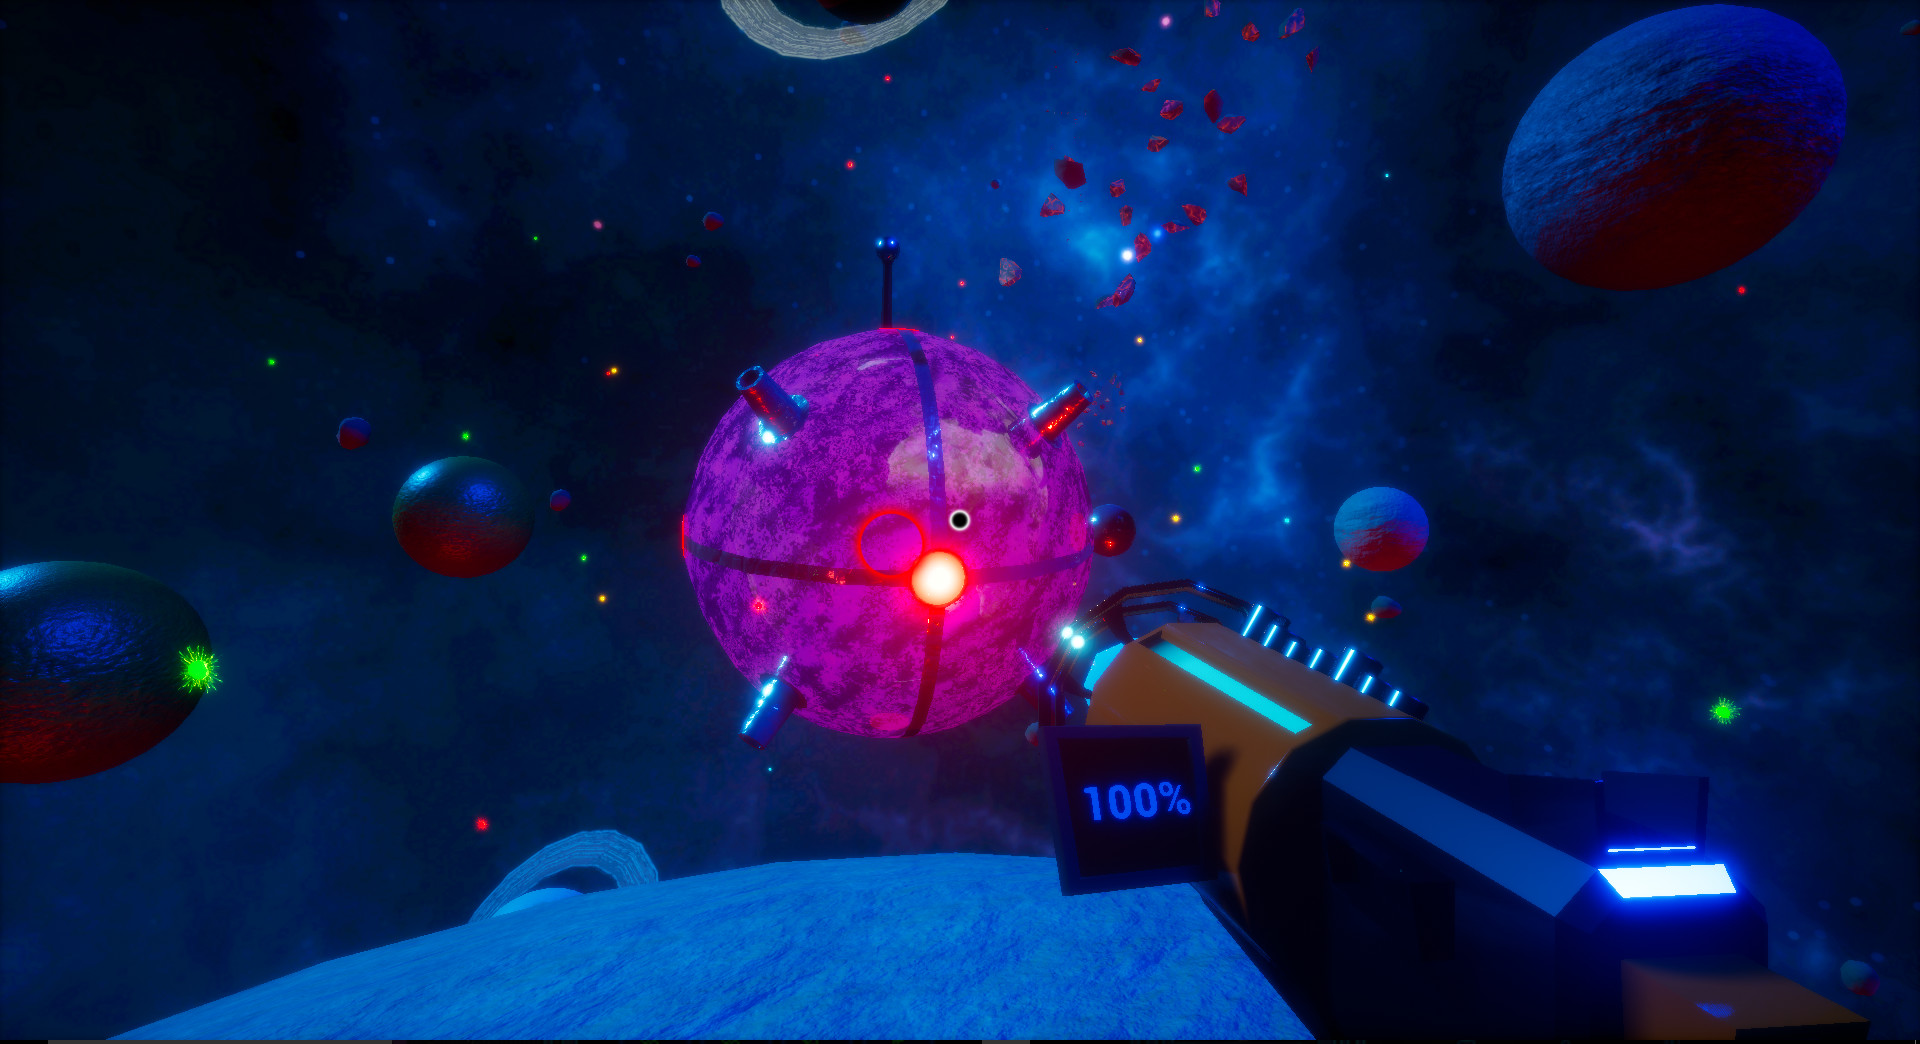 Ingame screenshot of the main boss taken from the firstperson player perspective